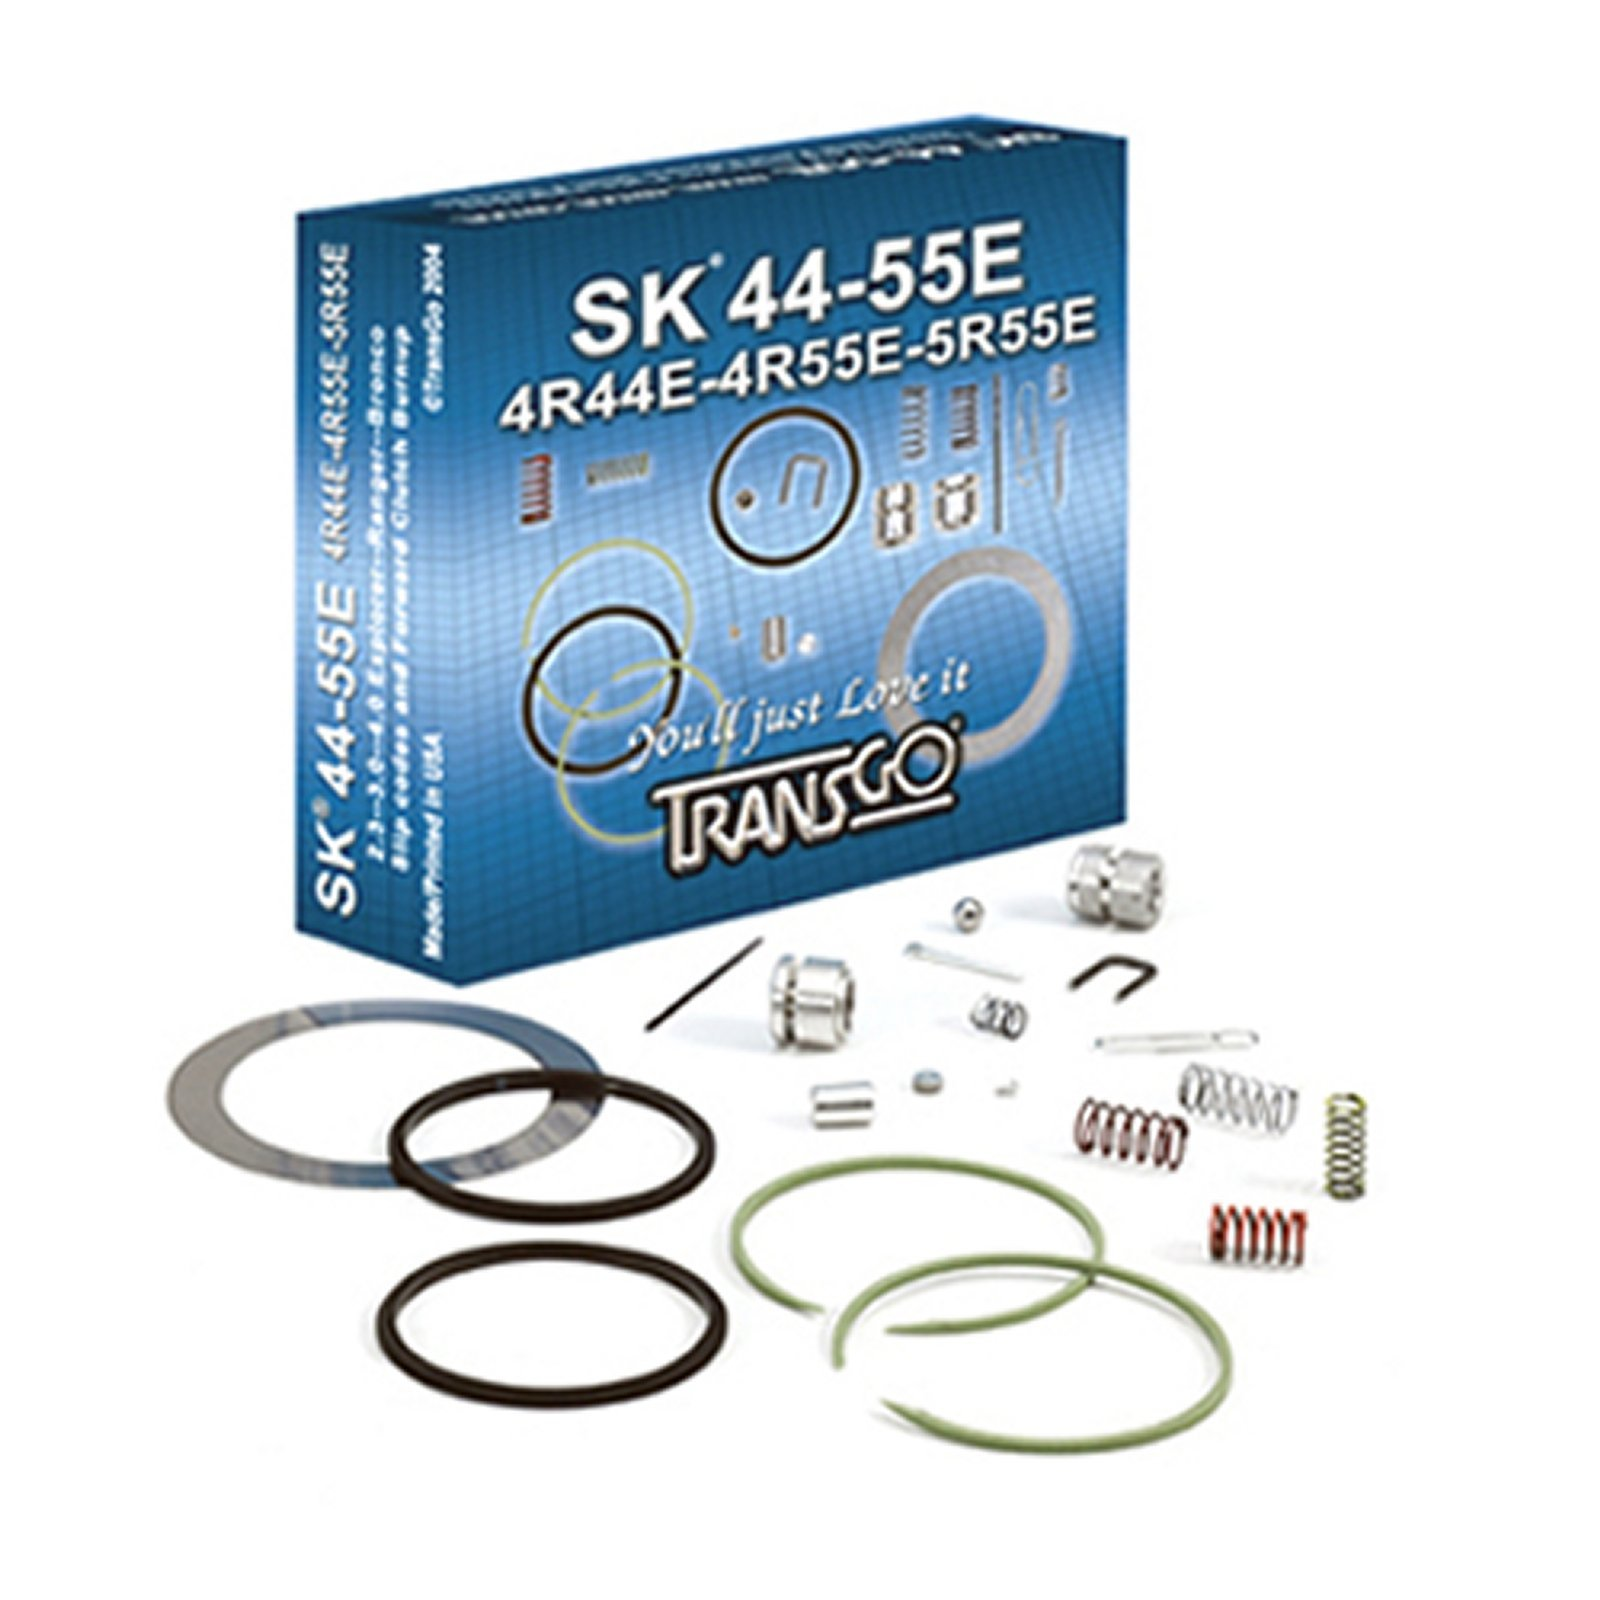 4R-44 4R-55E 5R-44 5R-55E A4LD TRANSGO Shift Kit Valve Body Rebuild Kit